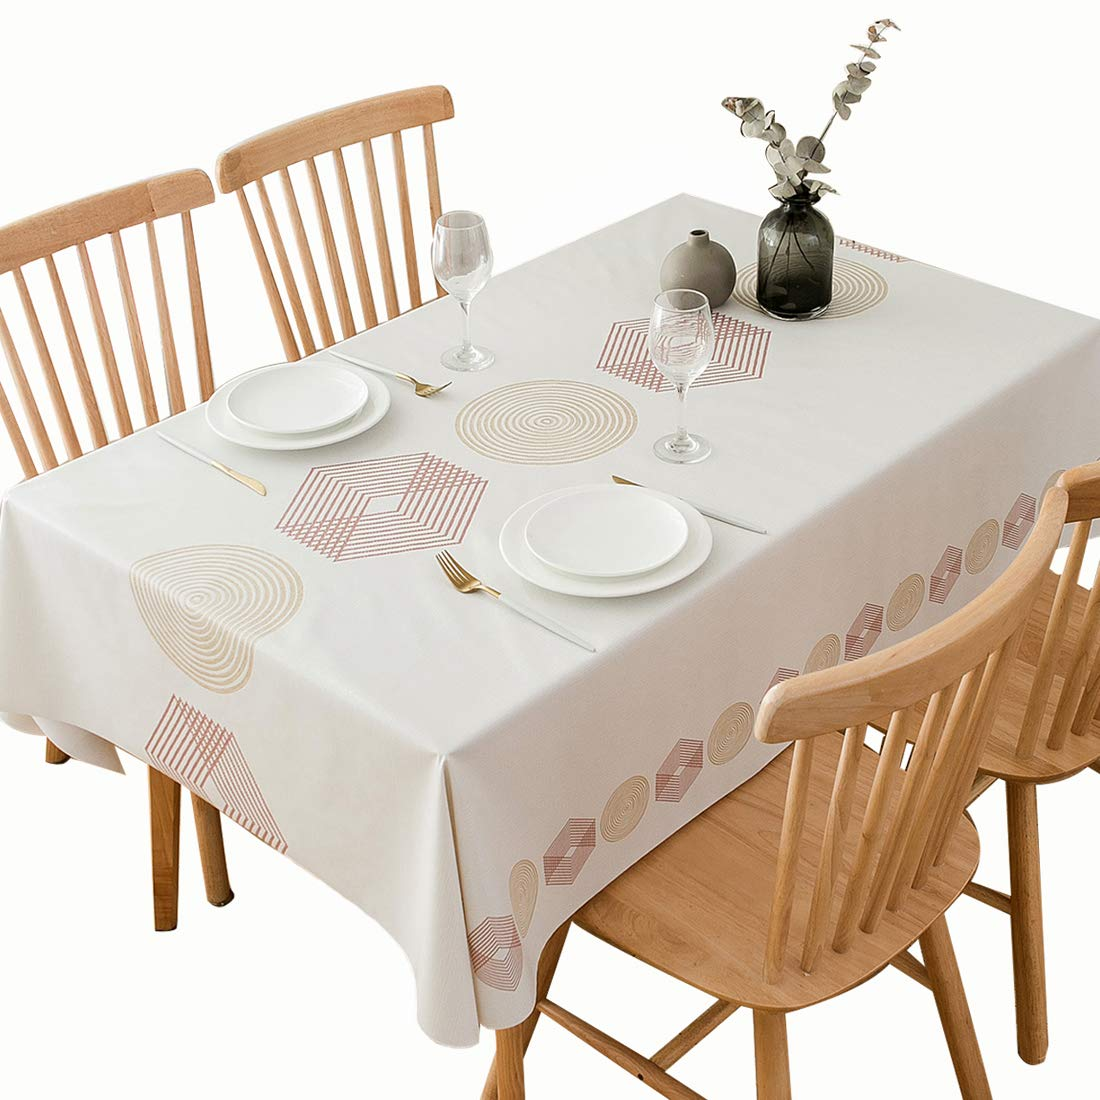 DUOFIRE Vinyl Tablecloth Rectangle Heavy Weight Table Cover Wipe Clean Waterproof (54 x 54 Inch, Color-no.023)